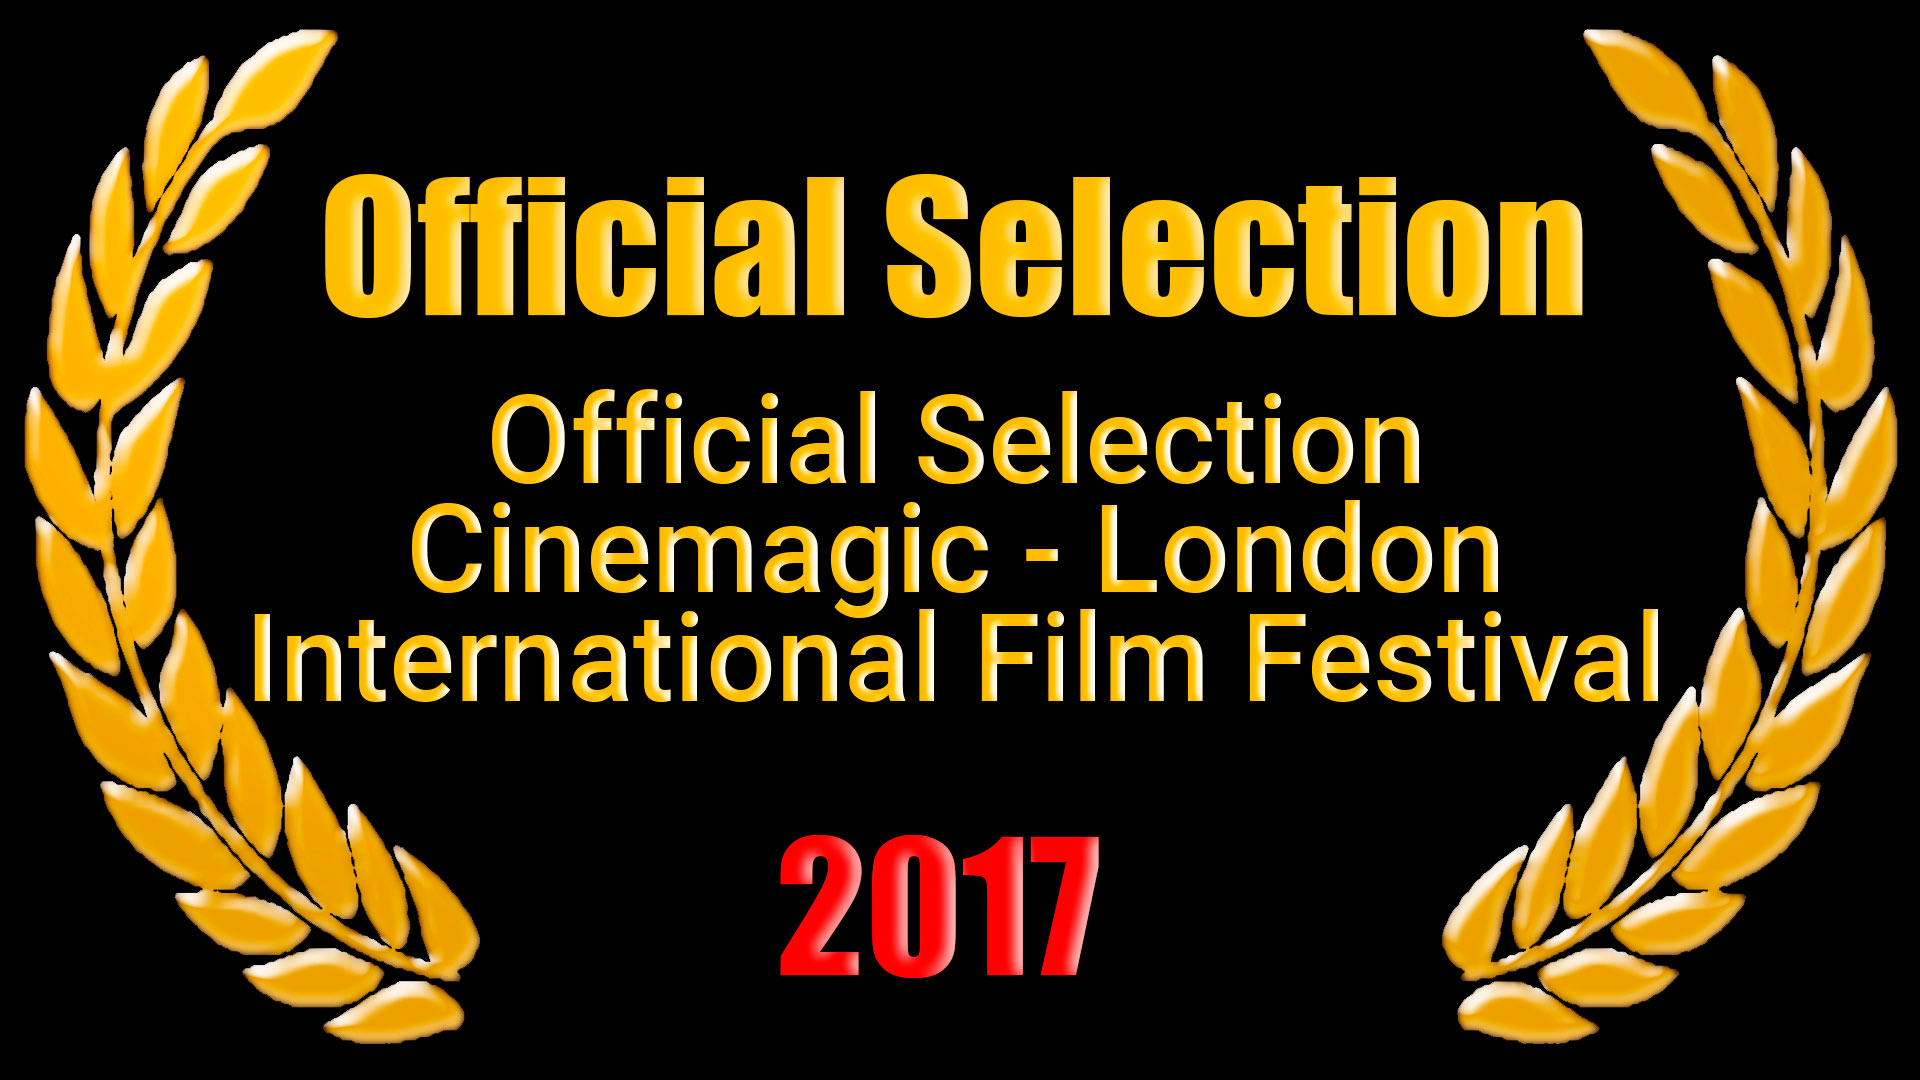 Official Selection Cinemagic - London International Film Festival 2016